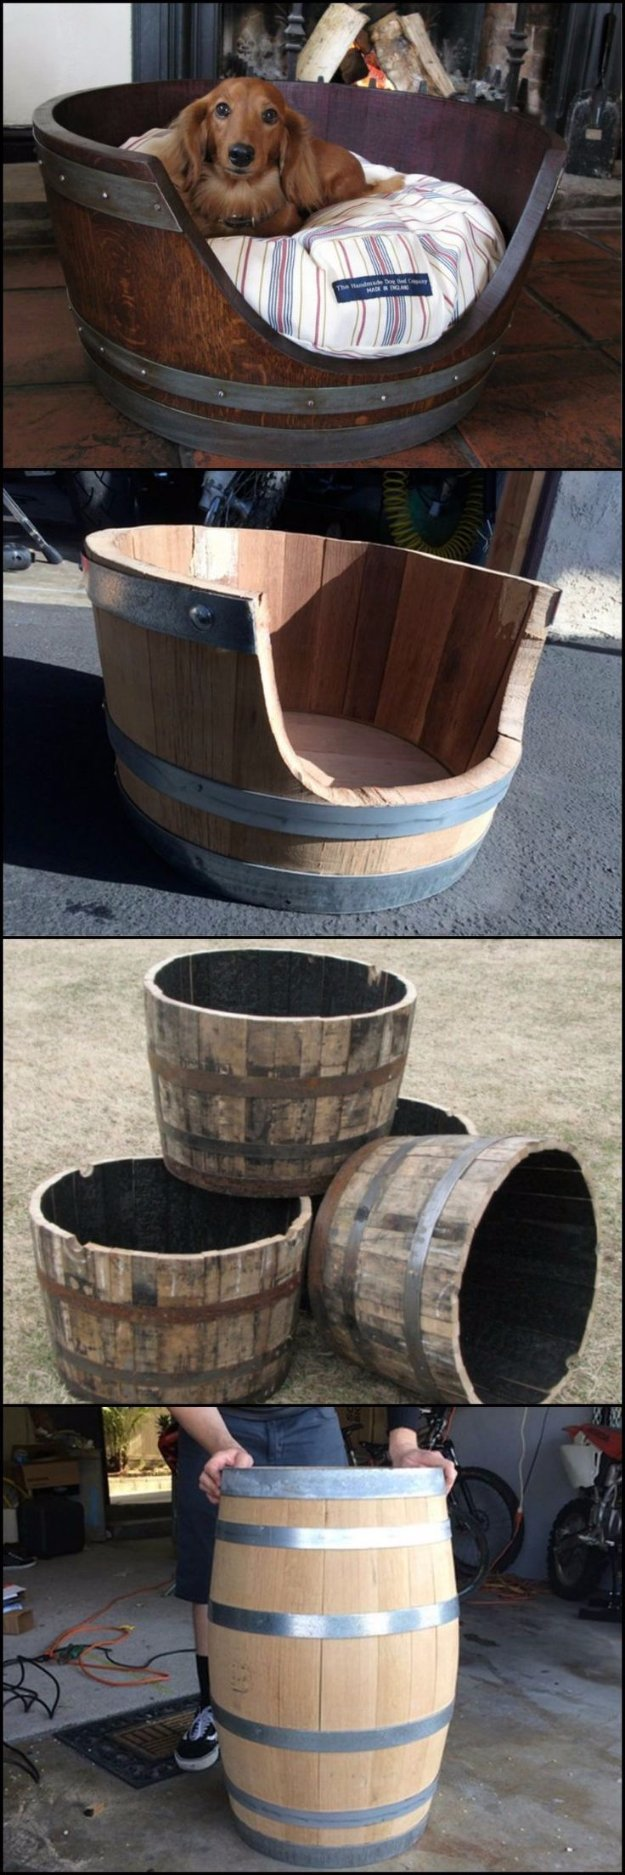 DIY Dog Beds - DIY Wine Barrel Dog Bed - Projects and Ideas for Large, Medium and Small Dogs. Cute and Easy No Sew Crafts for Your Pets. Pallet, Crate, PVC and End Table Dog Bed Tutorials #pets #diypet #dogs #diyideas